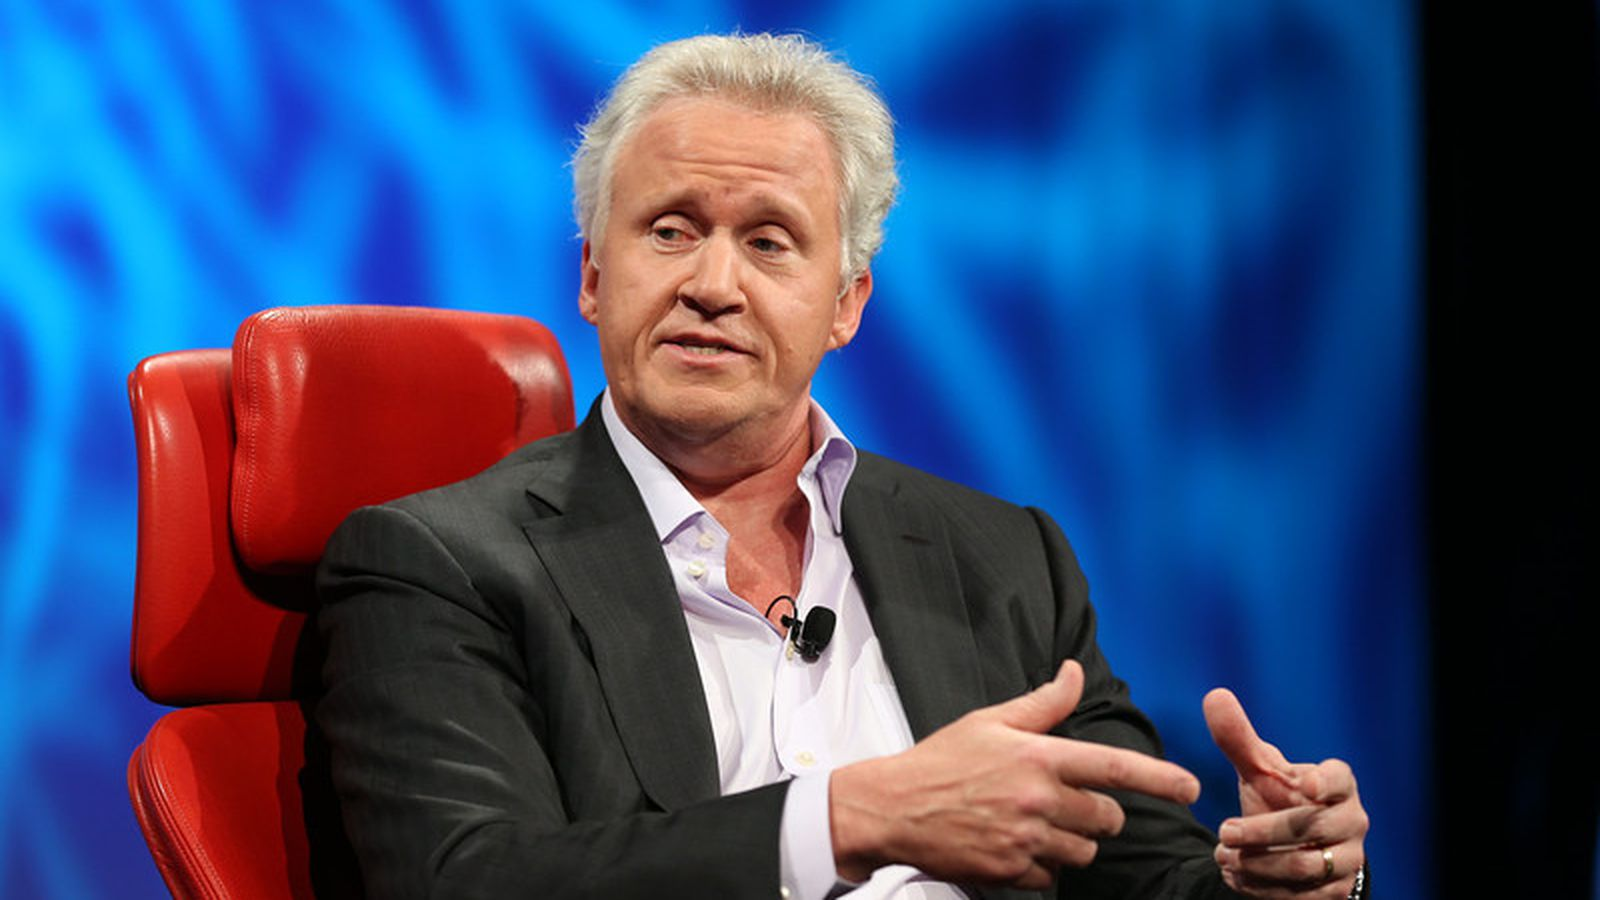 recode.net - Jeff Immelt emerges as frontrunner to become Uber CEO